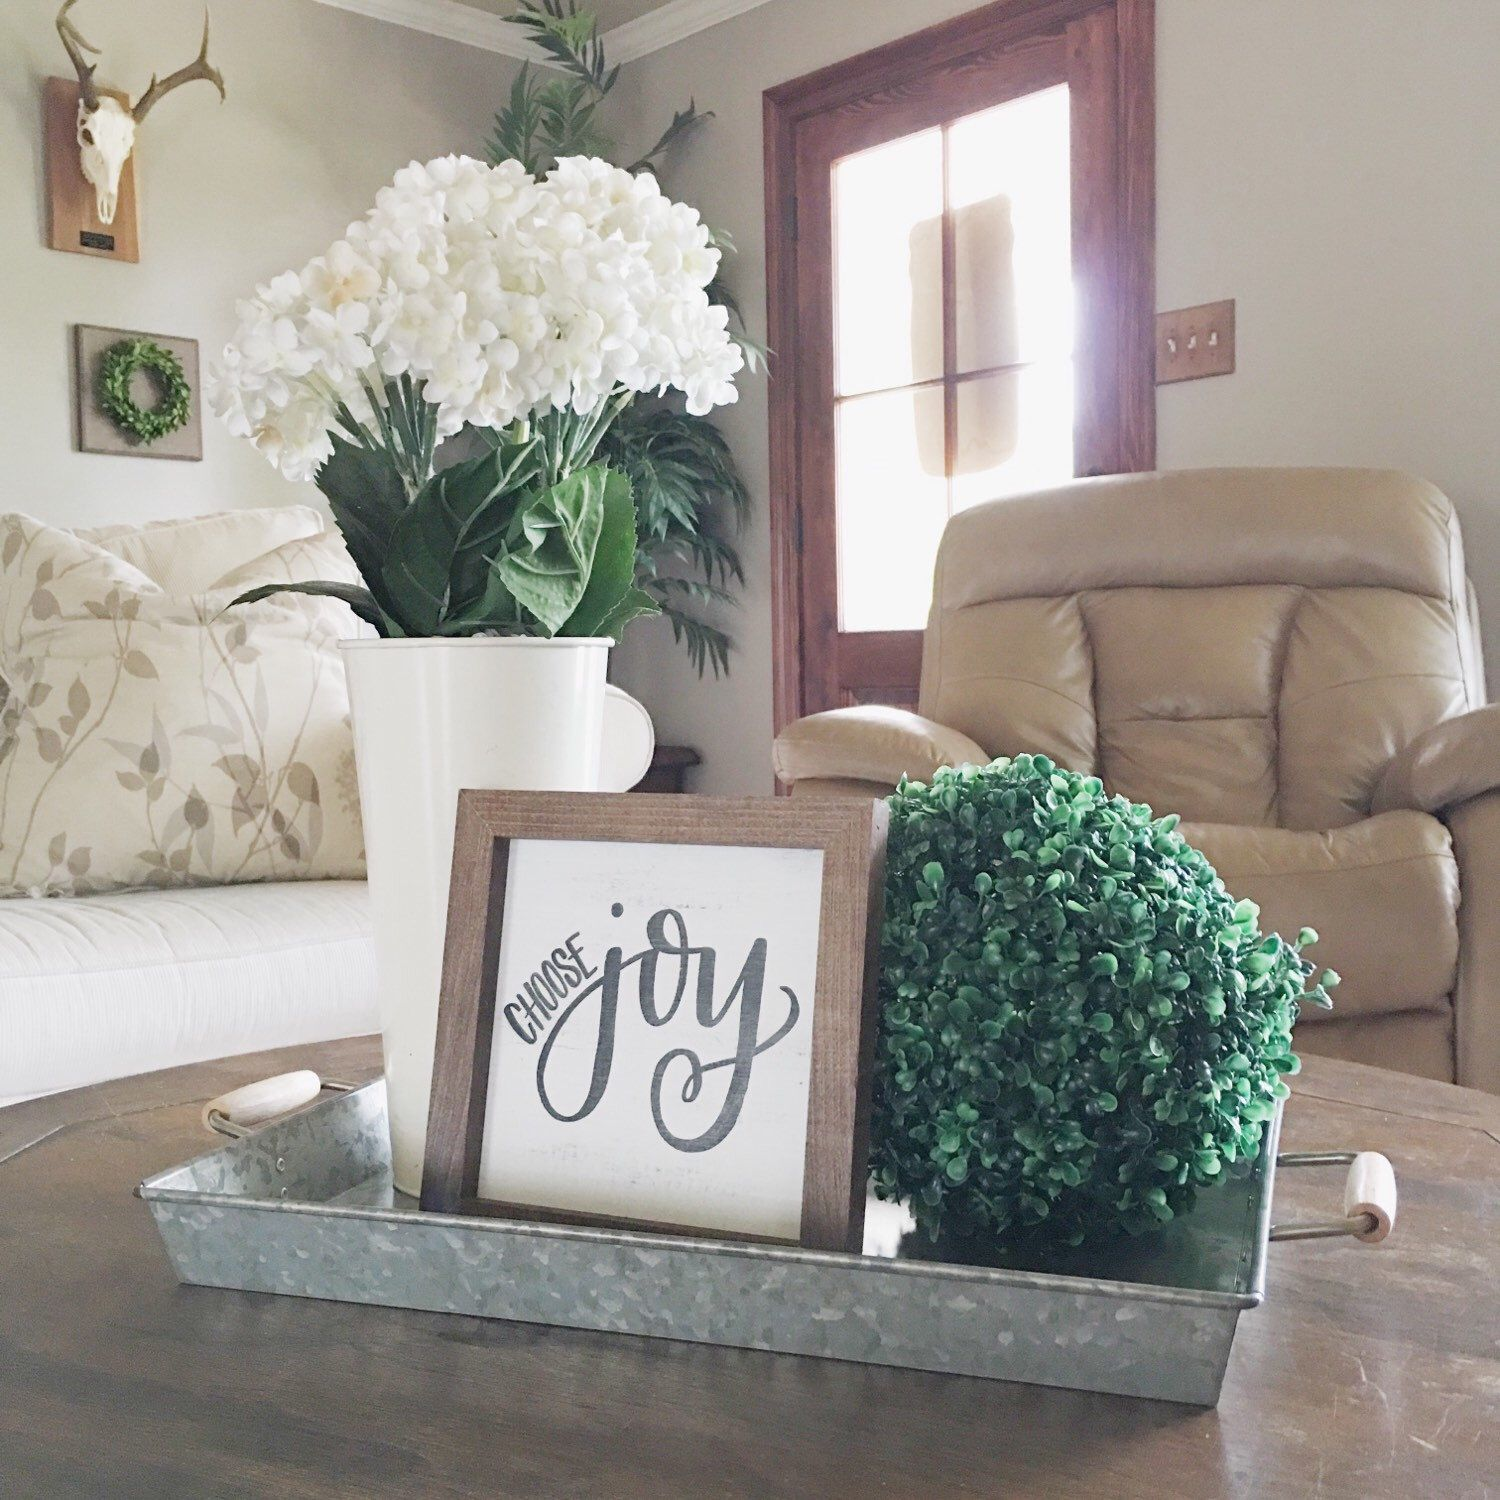 Choose Joy - MINI 8x8 distressed wood sign by ImperfectDust on Etsy https://www.etsy.com/listing/397864747/choose-joy-mini-8x8-distressed-wood-sign